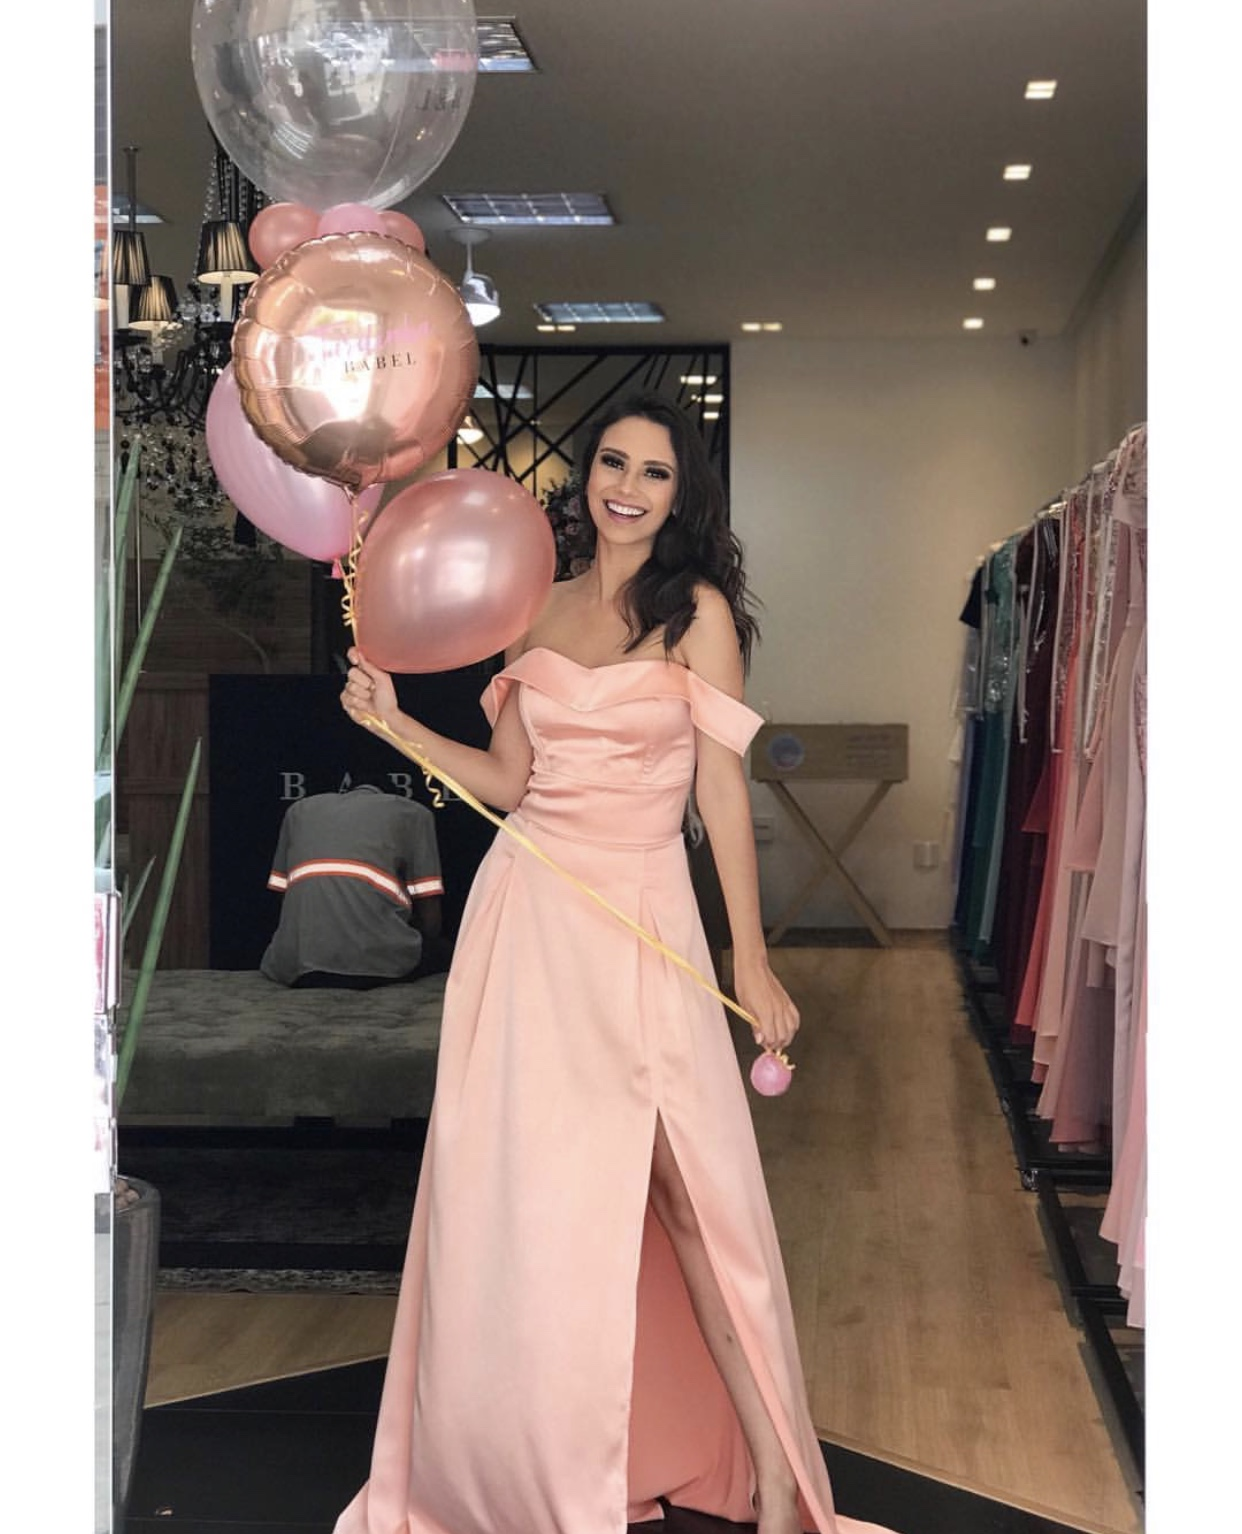 Peach Off The Shoulder Satin Prom Dresses 2019,Side Slit Long Prom Dresses,Homecoming Dresses 2019